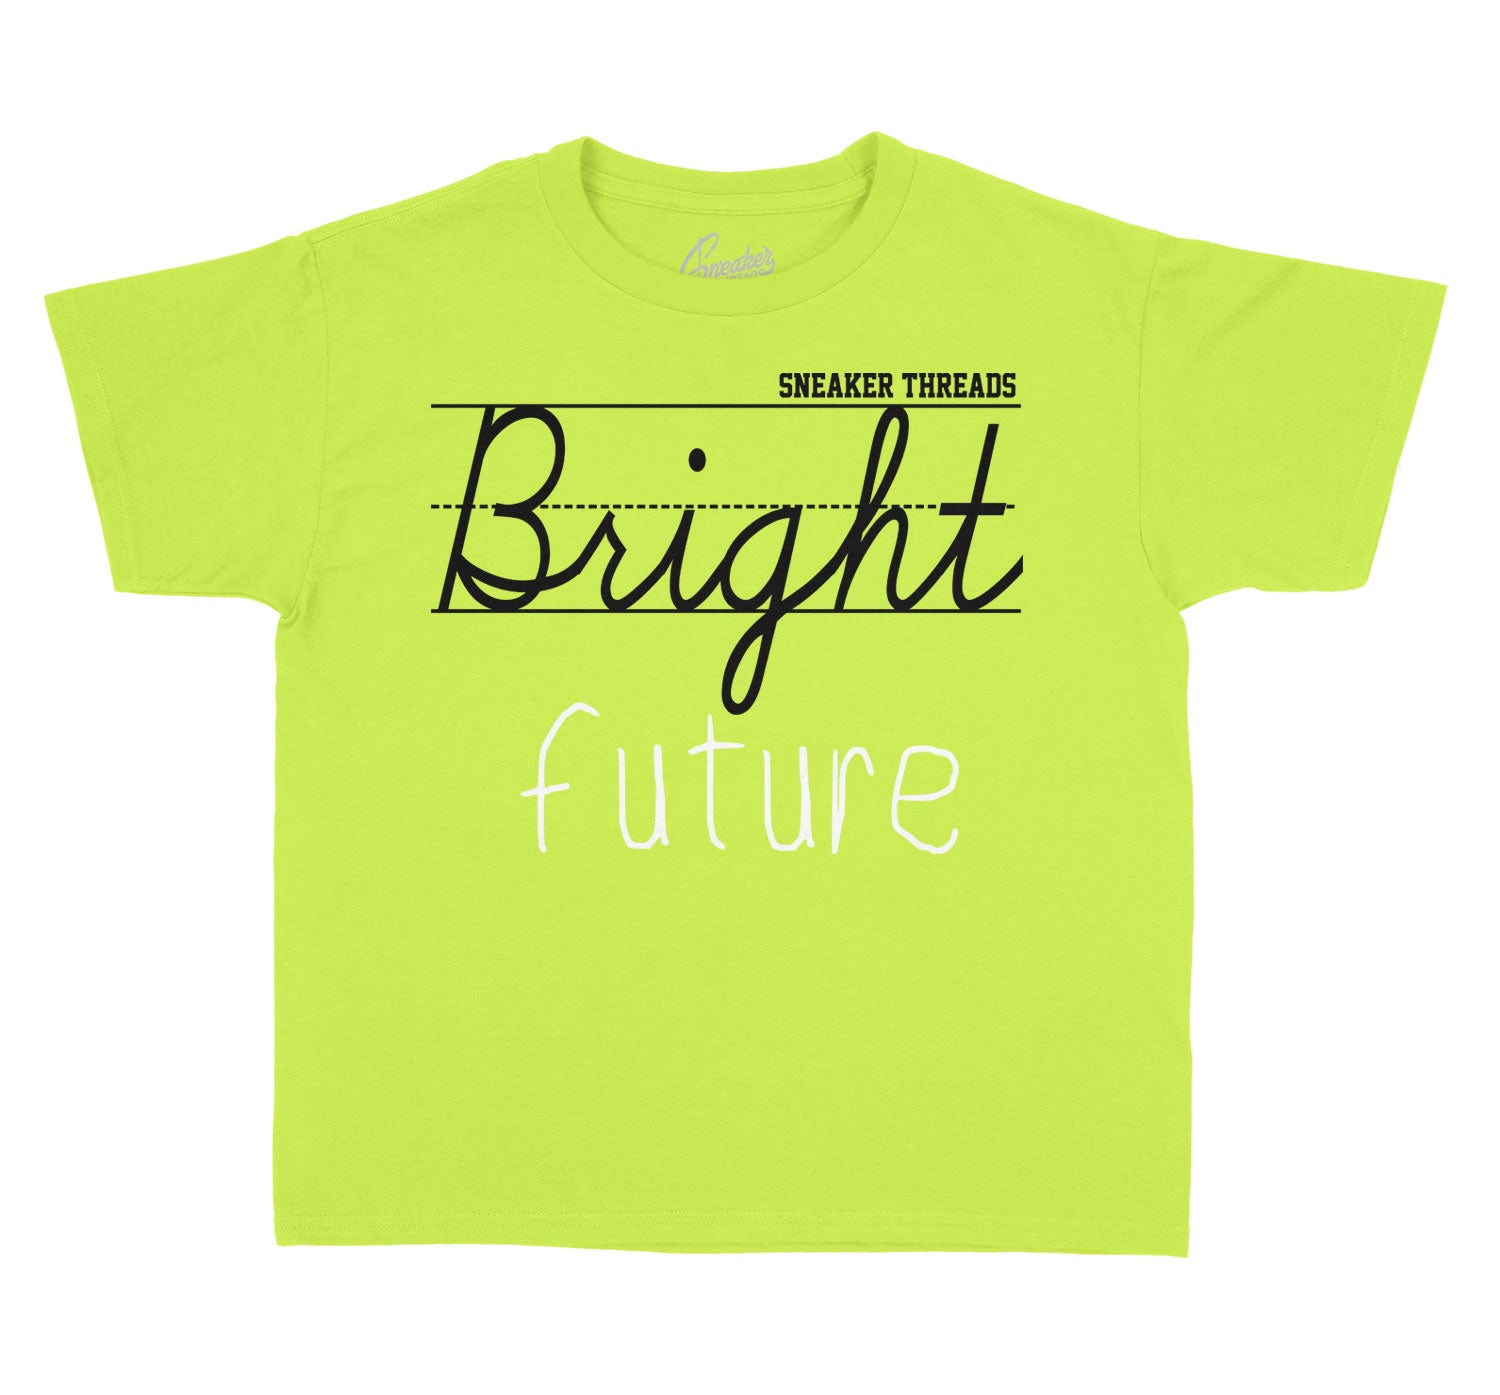 Kids - Volt Foamposite Bright Future Shirt